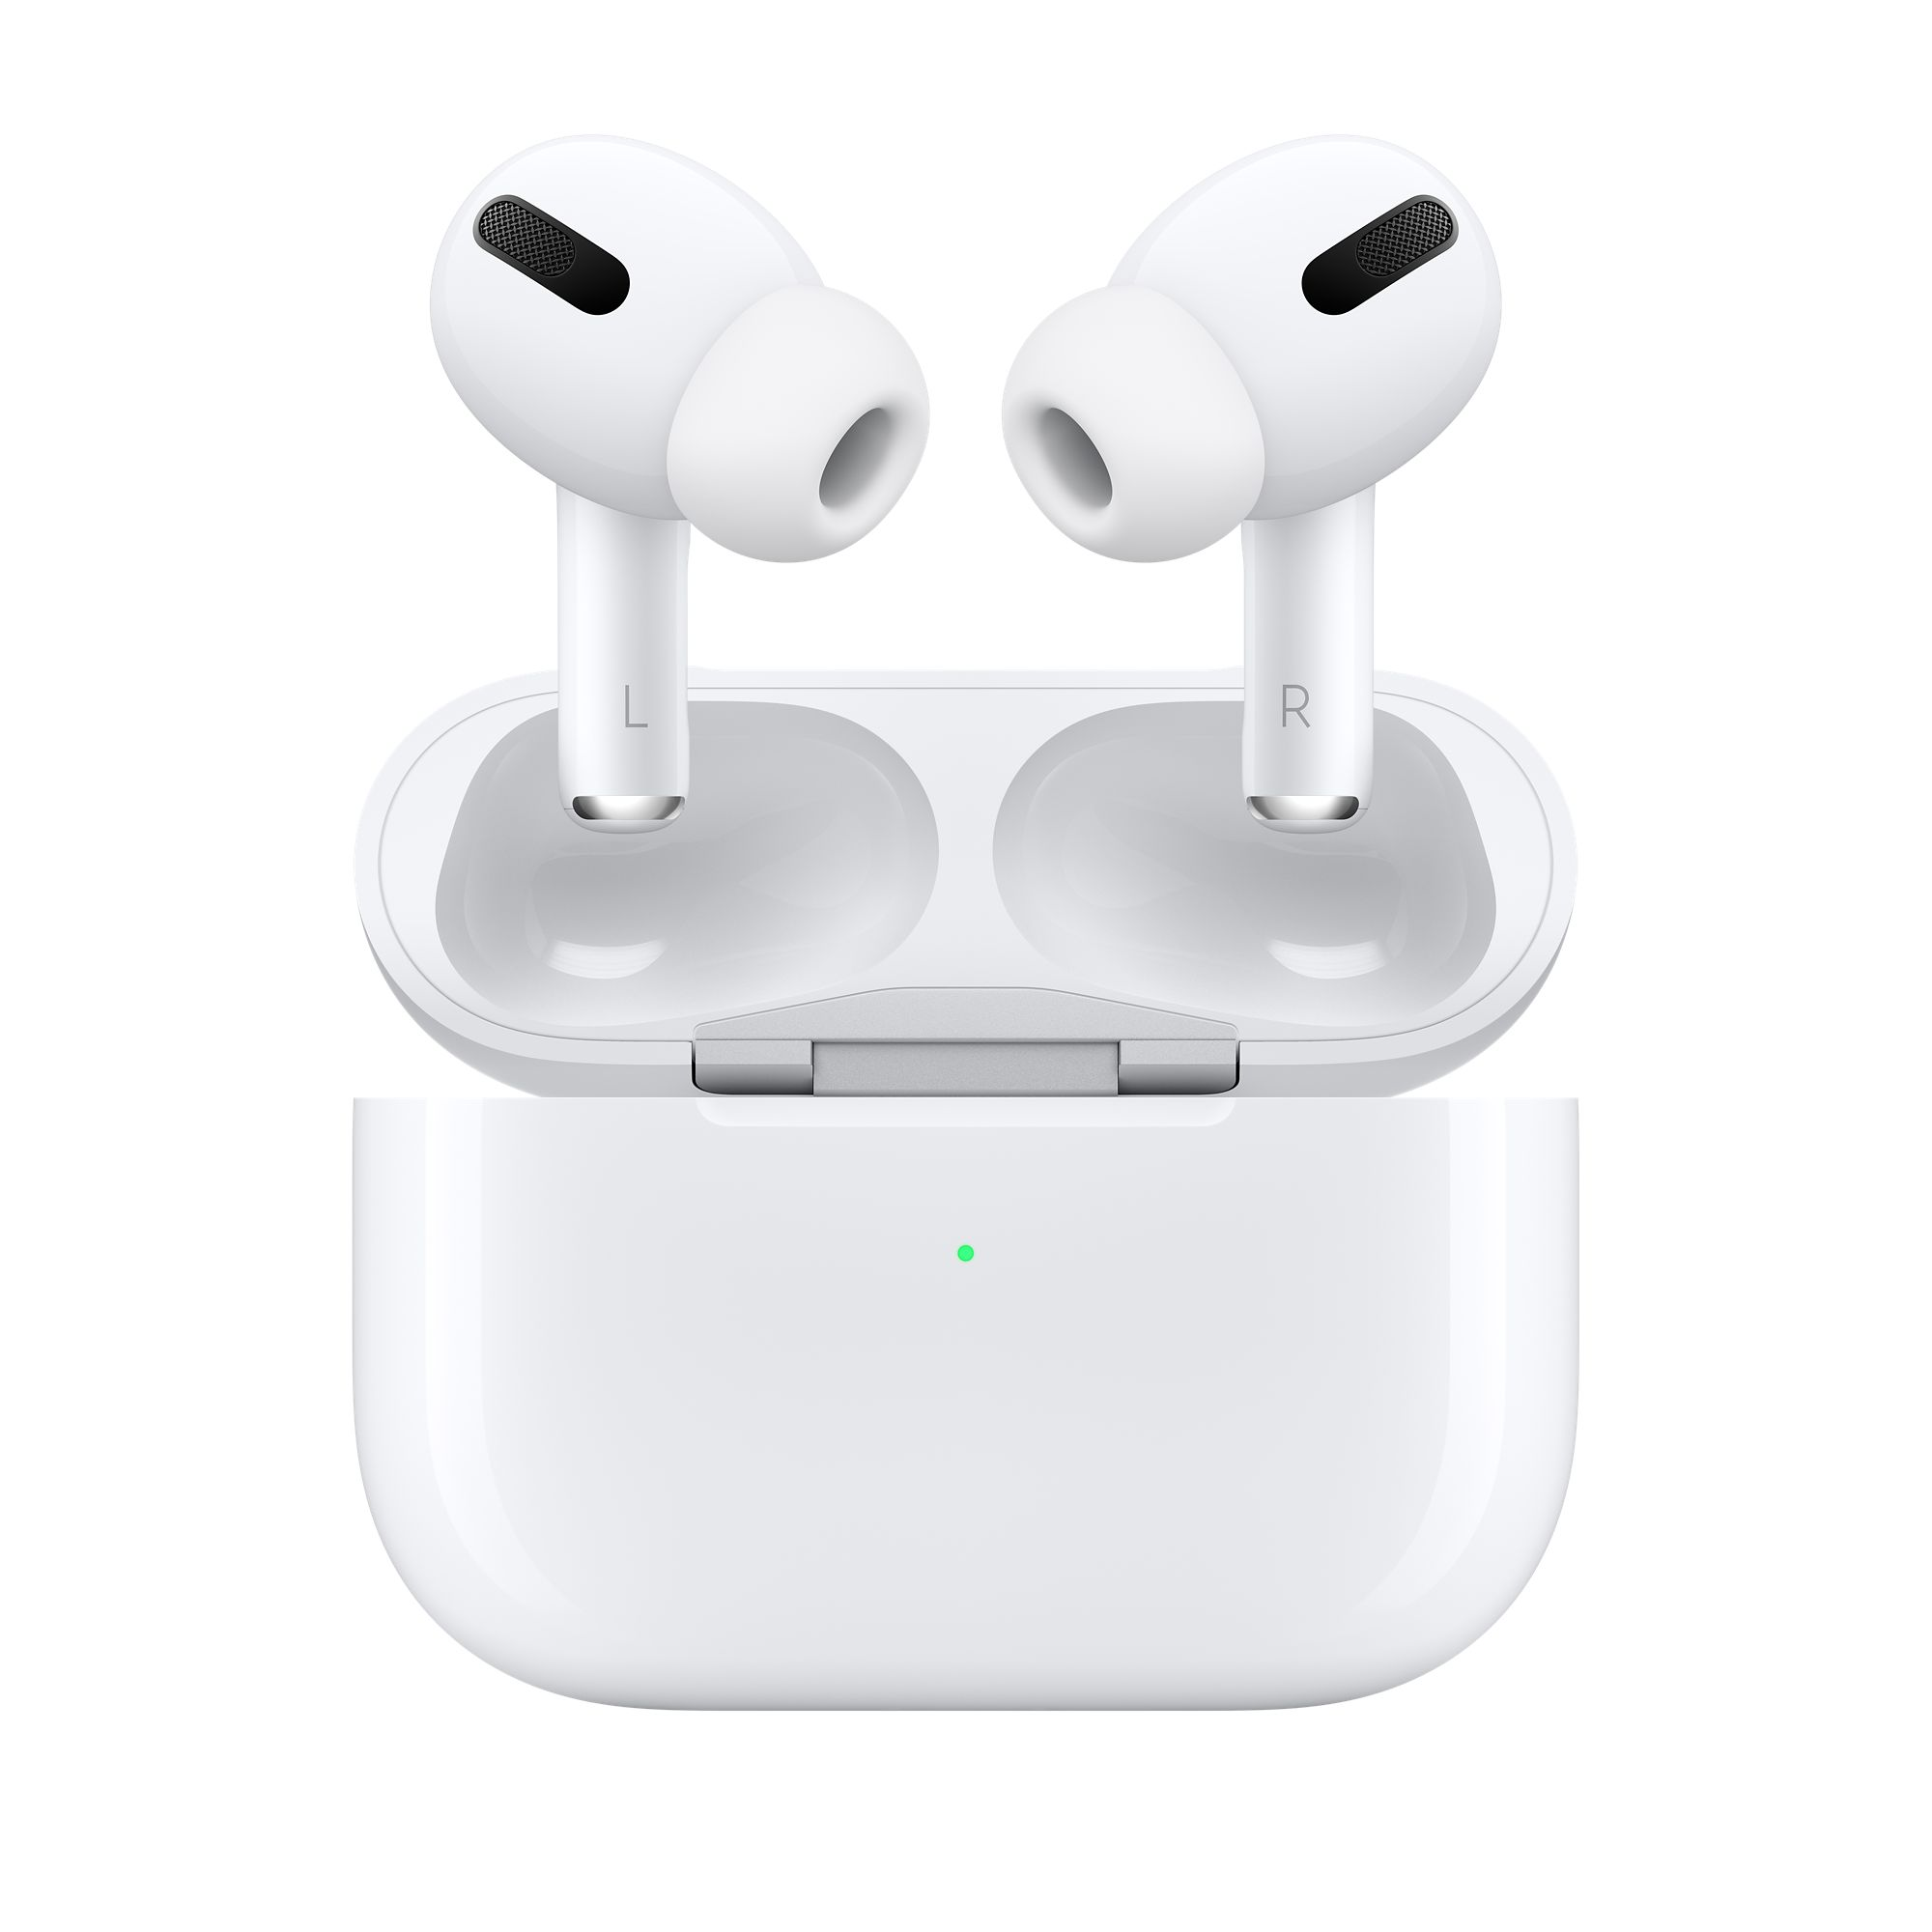 LifeTein AirPods Pro giveaway